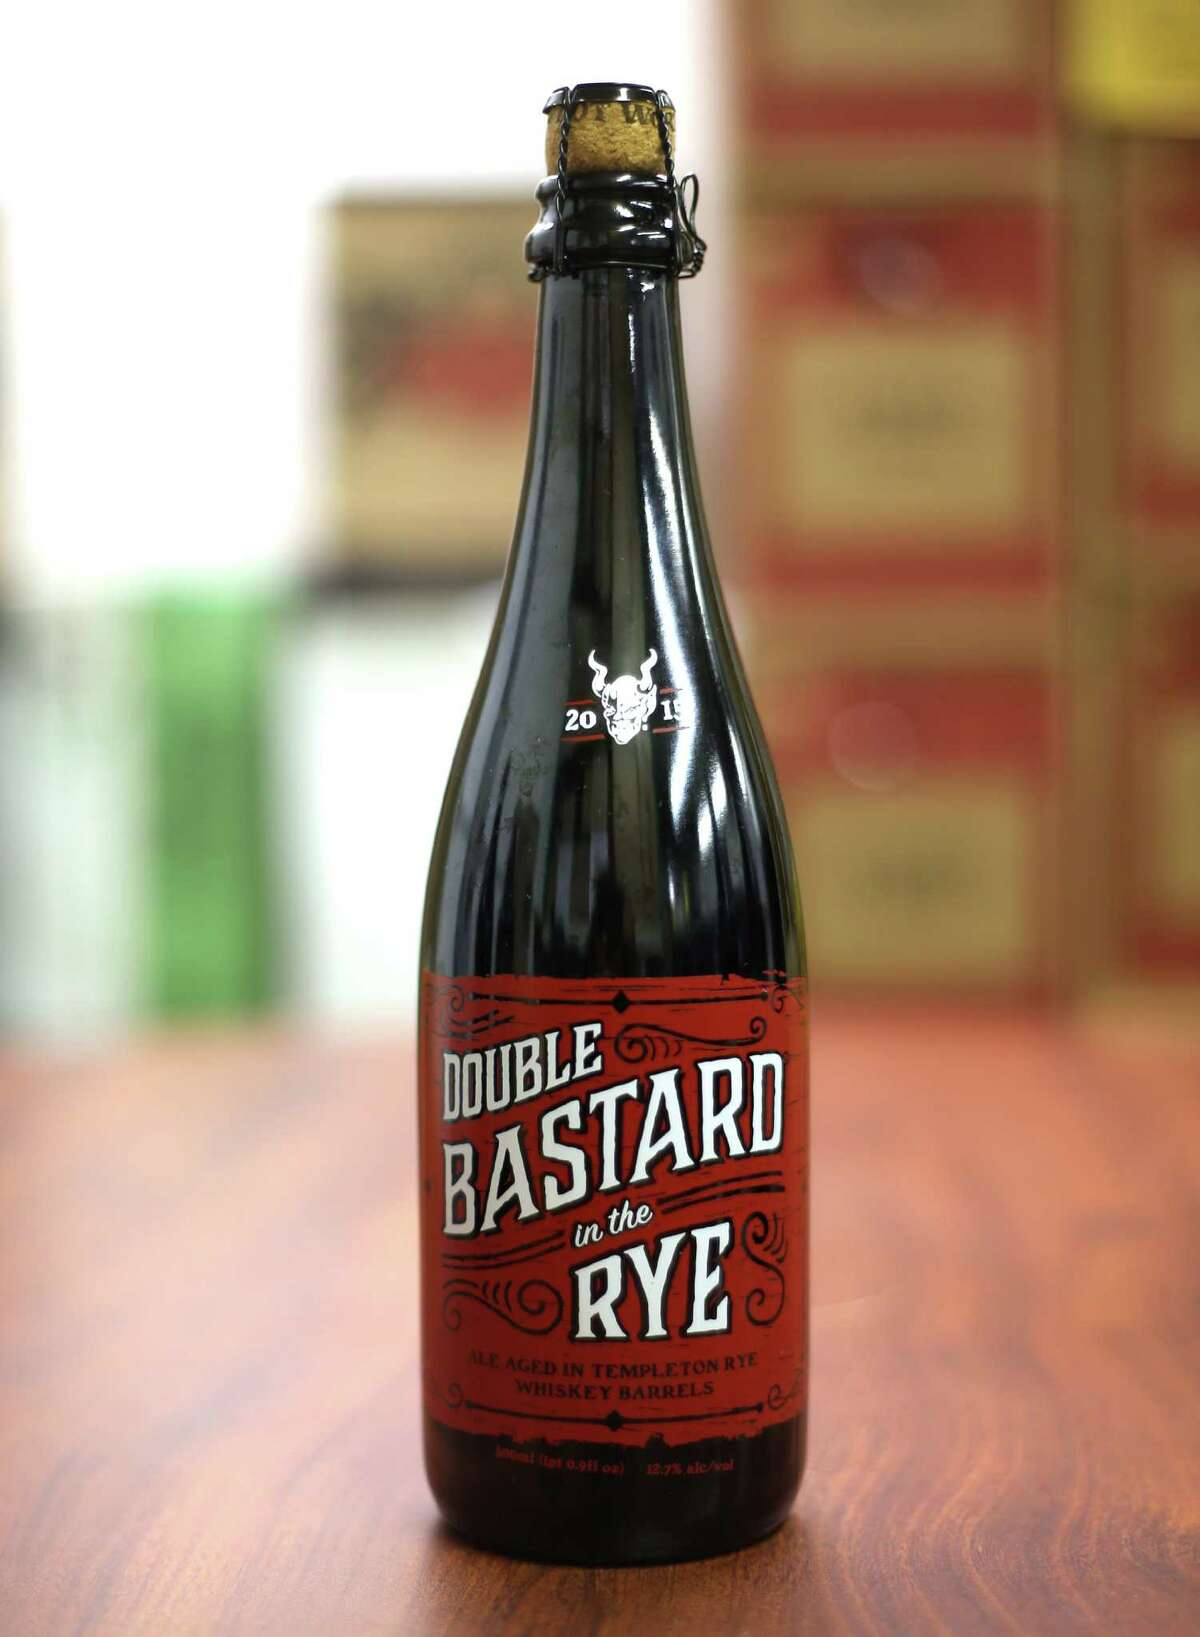 Double Bastard in the Rye by Stone Brewing Company is one of beers that Specs on Smith will be offering on Black Friday photographed in their Houston offices on Friday, Nov. 13, 2015.